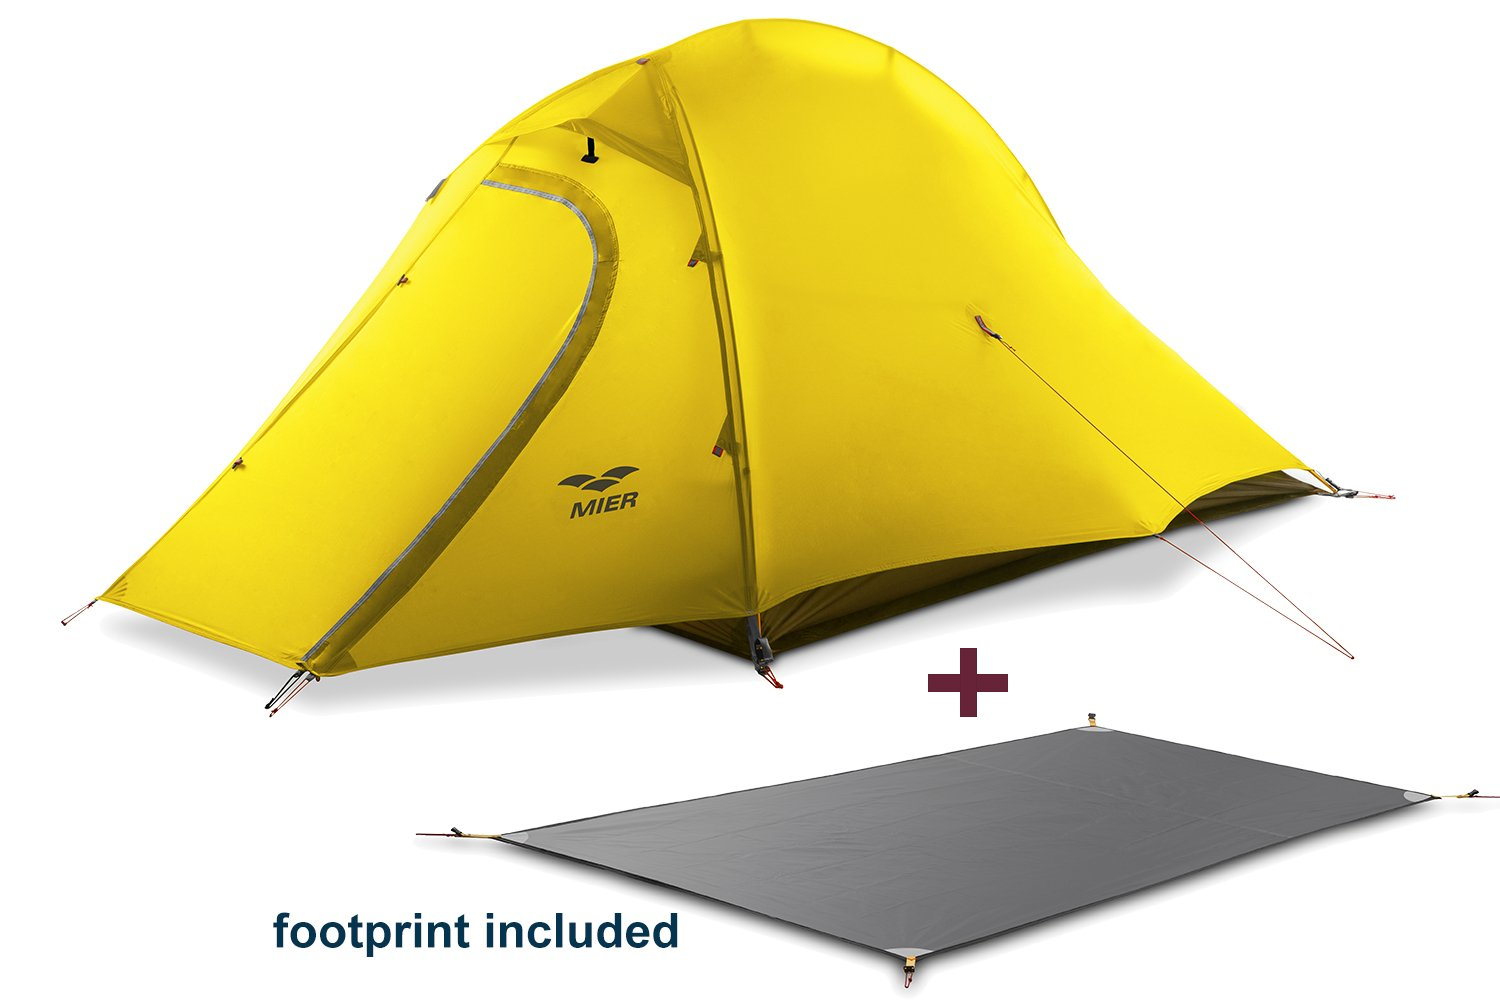 MIER 2 Person Camping Tent with Footprint Waterproof Backpacking Tent Lightweight /& Quick Setup